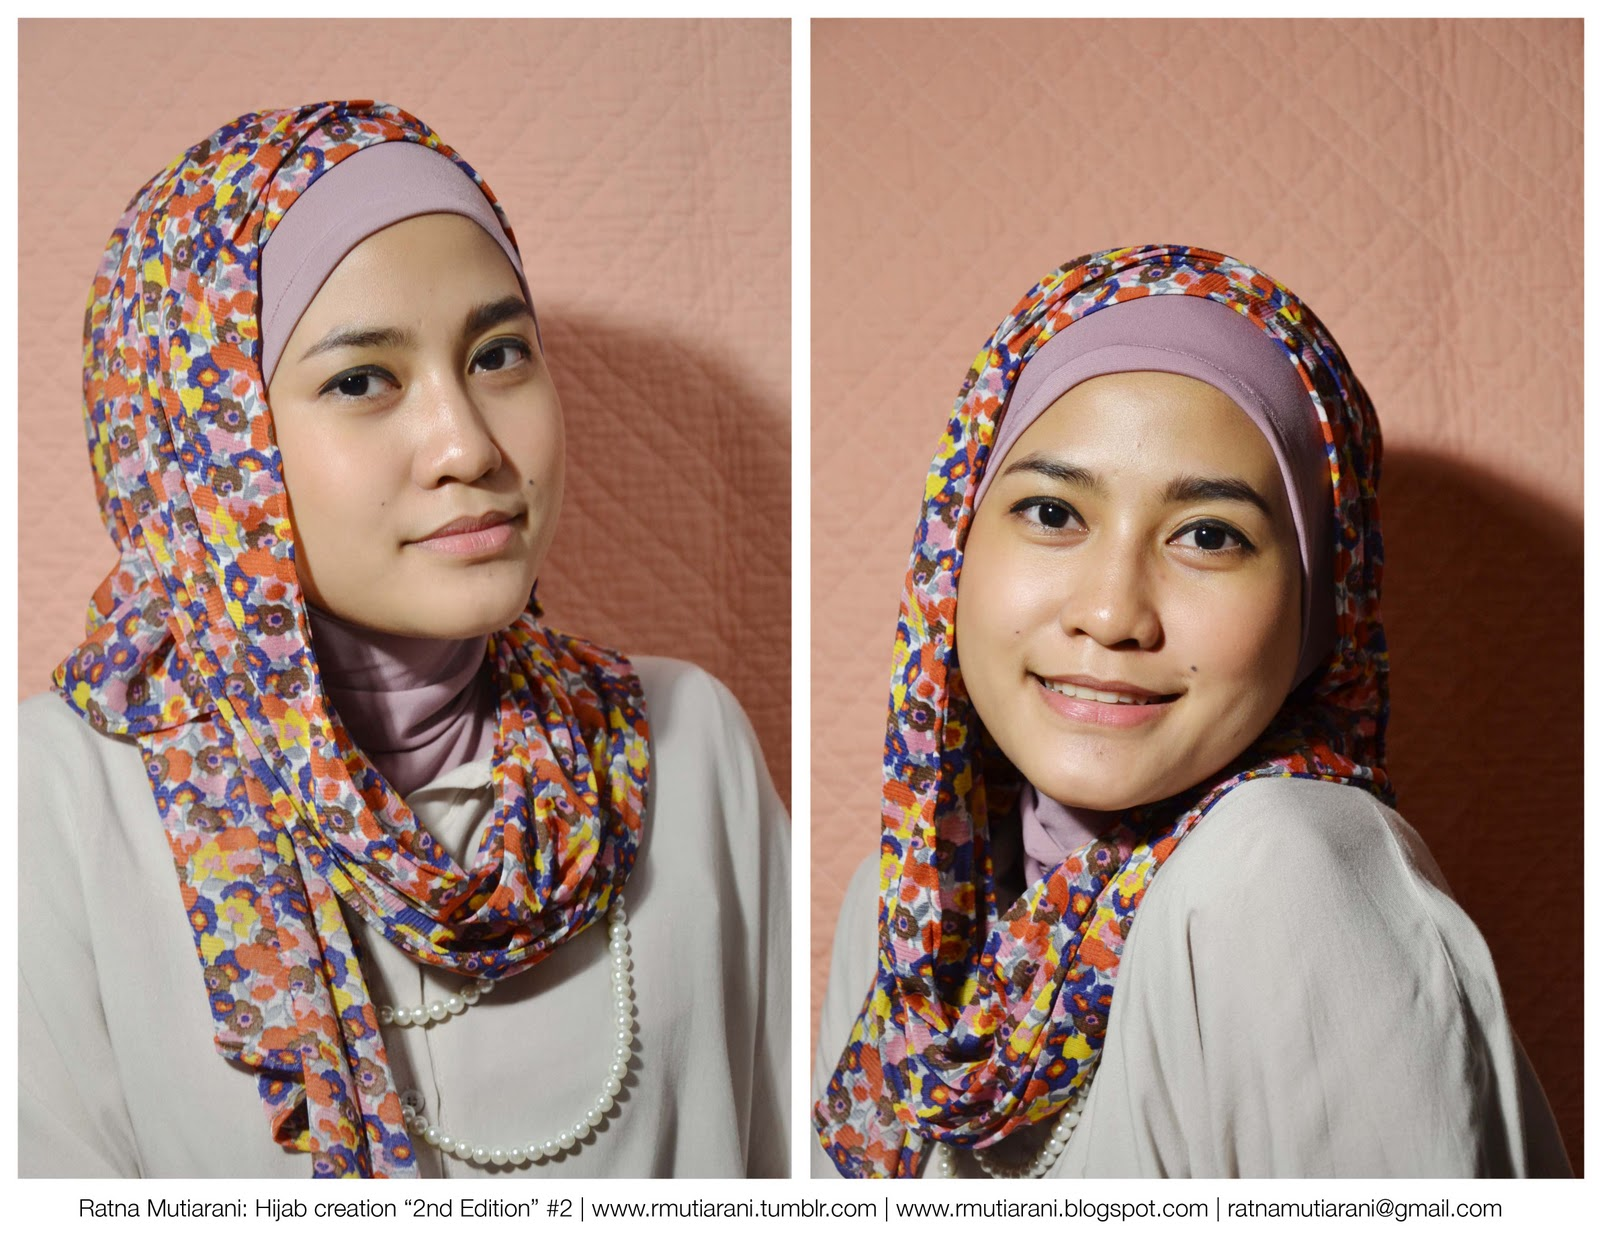 2 Photoshoot Hijab Trial Our Collections Ni September 11 Limited Edition